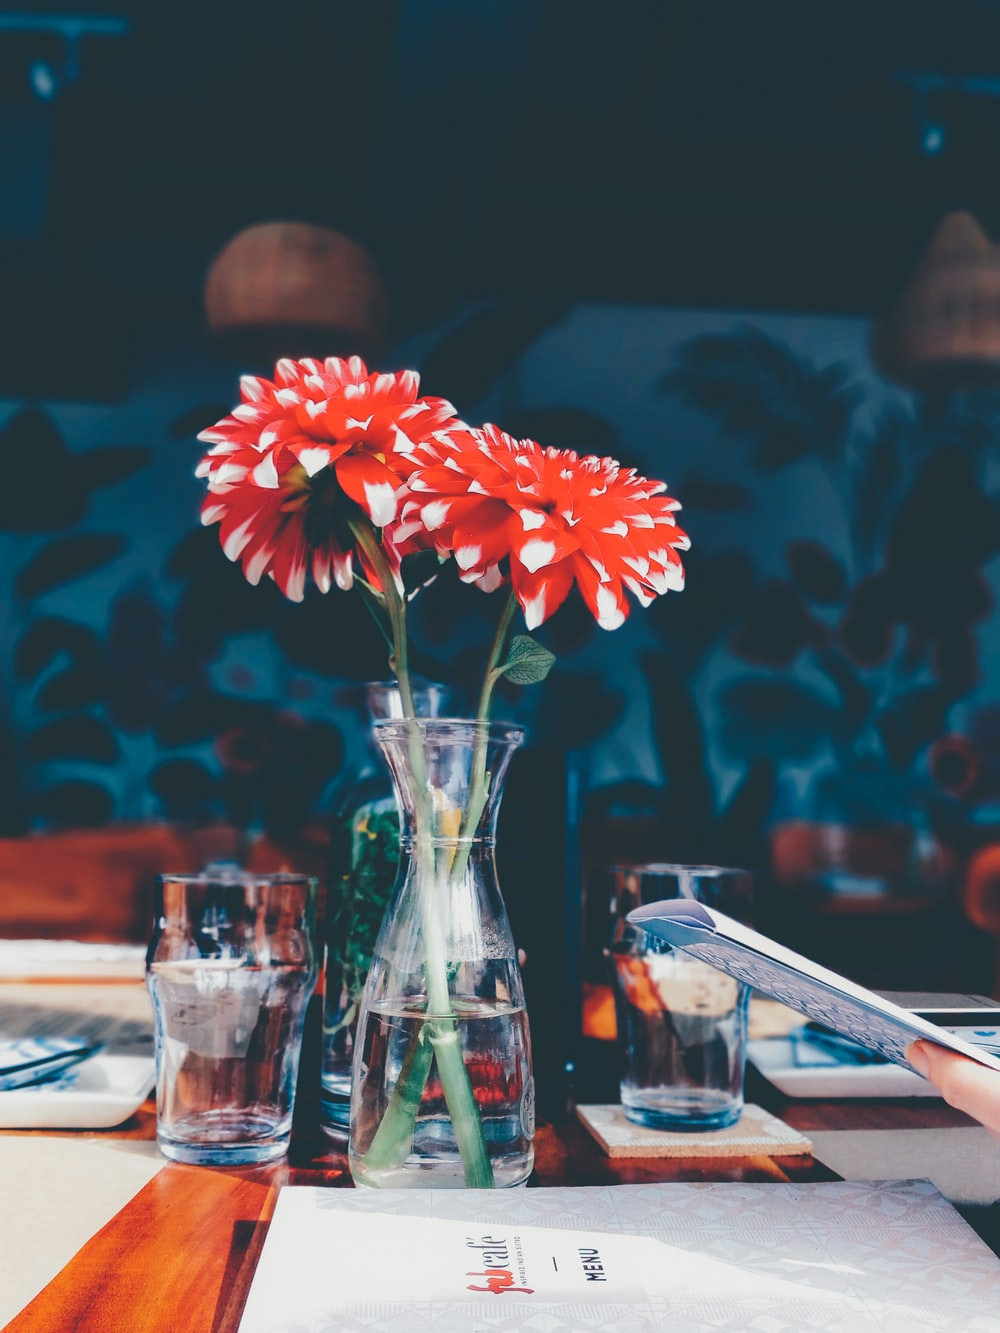 red and white chrysanthemum flowers in vase on table